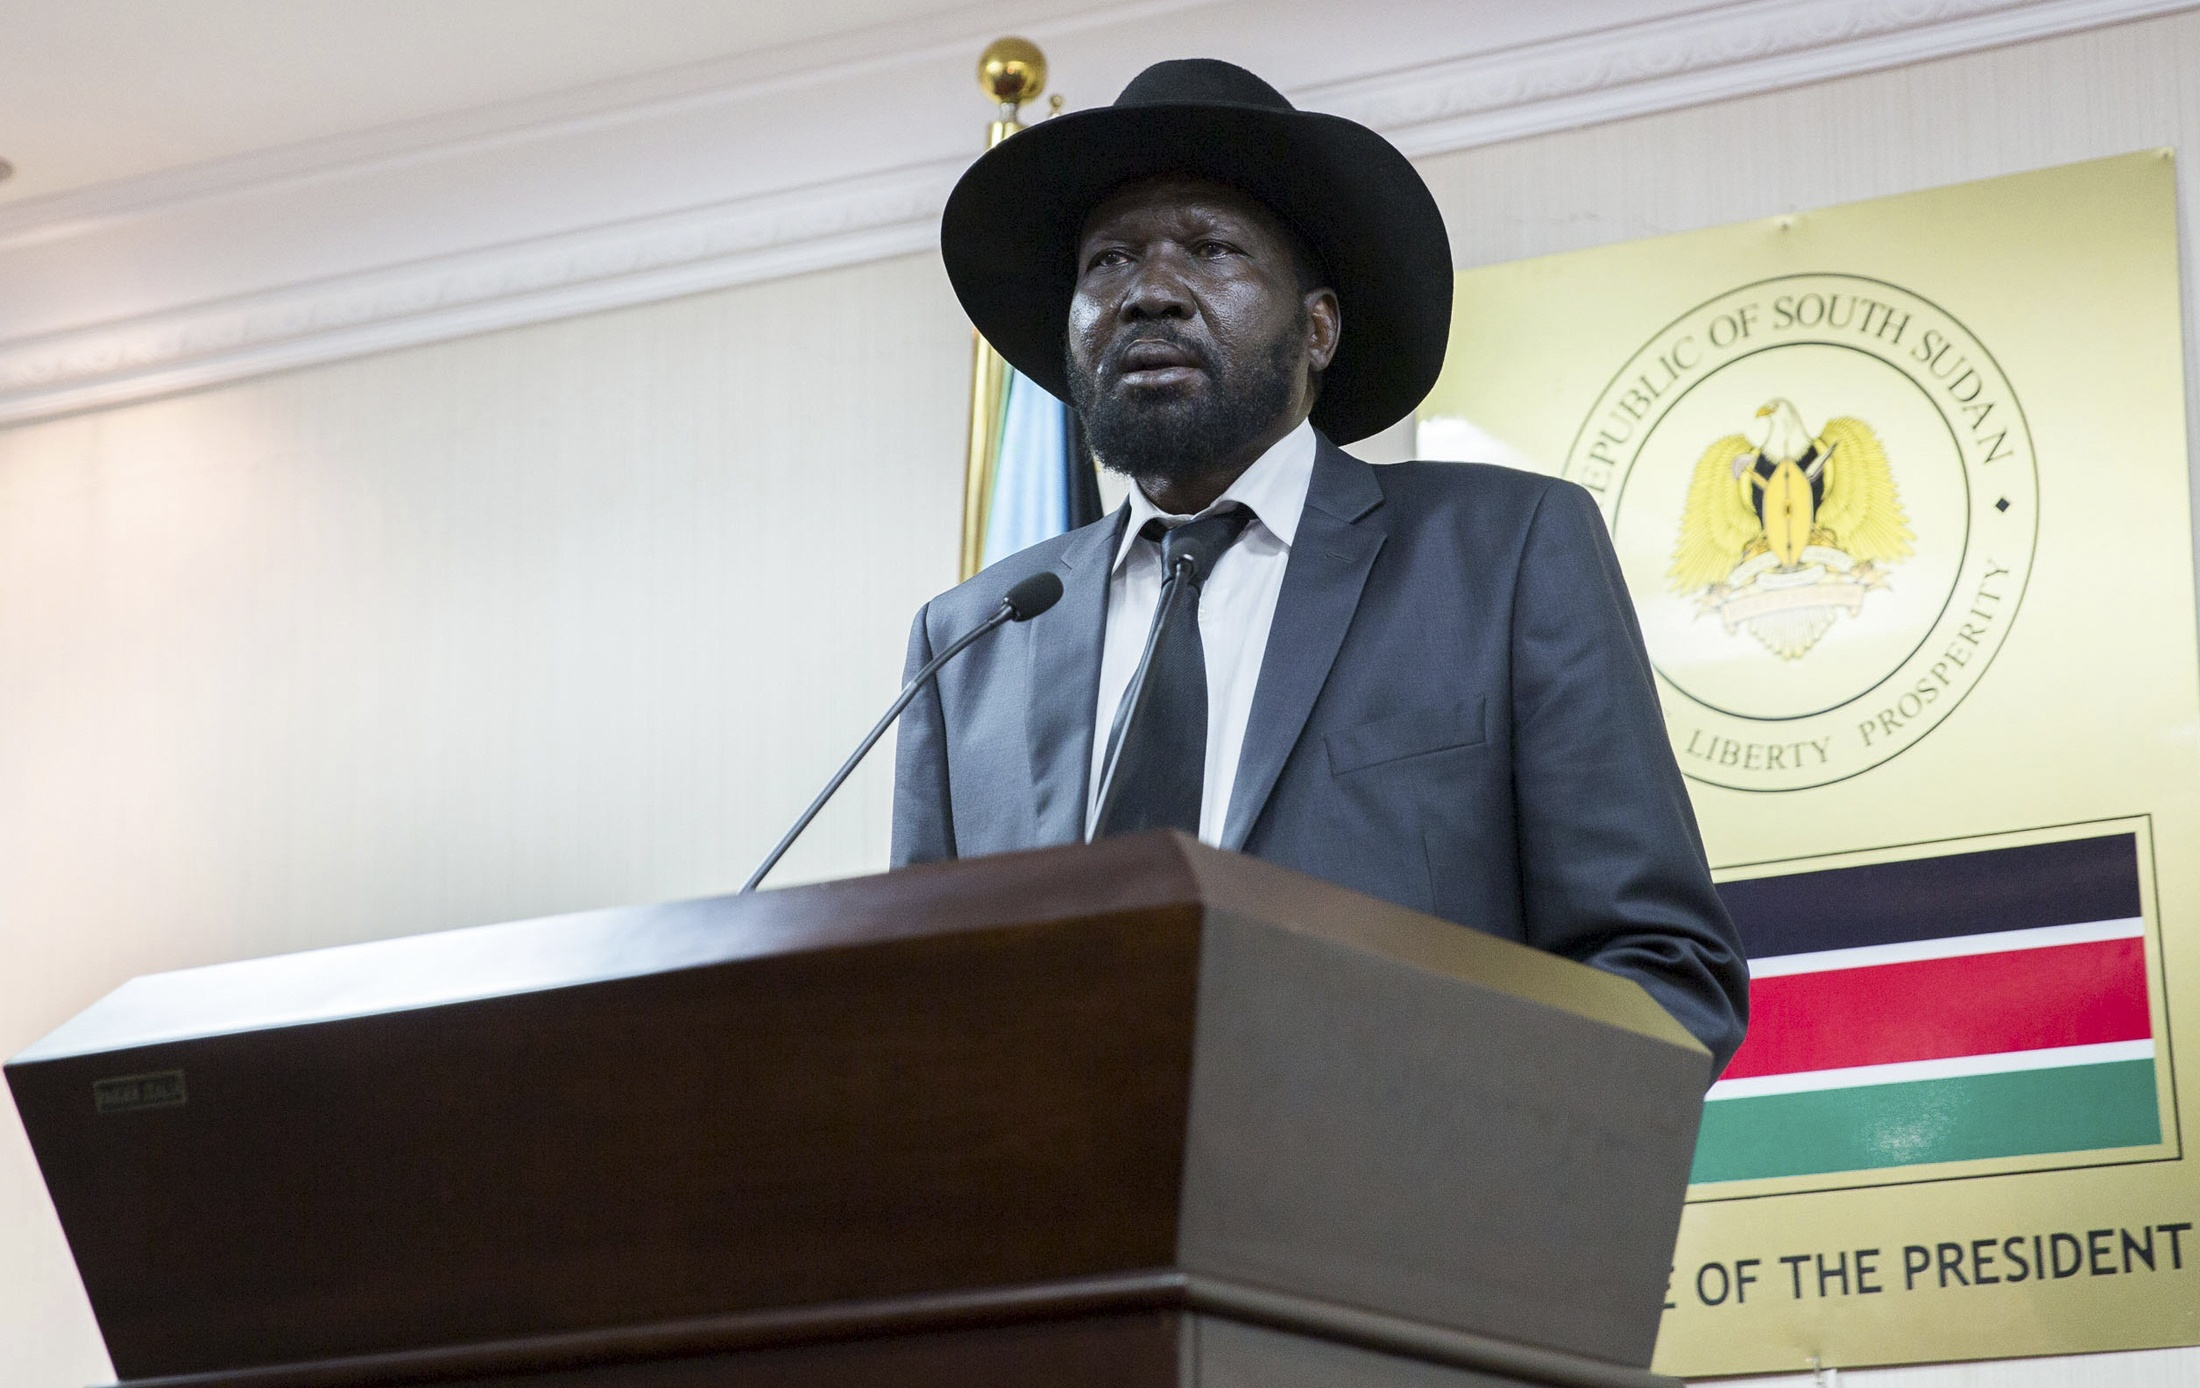 South Sudan rebel leader on way to meet president - rebel